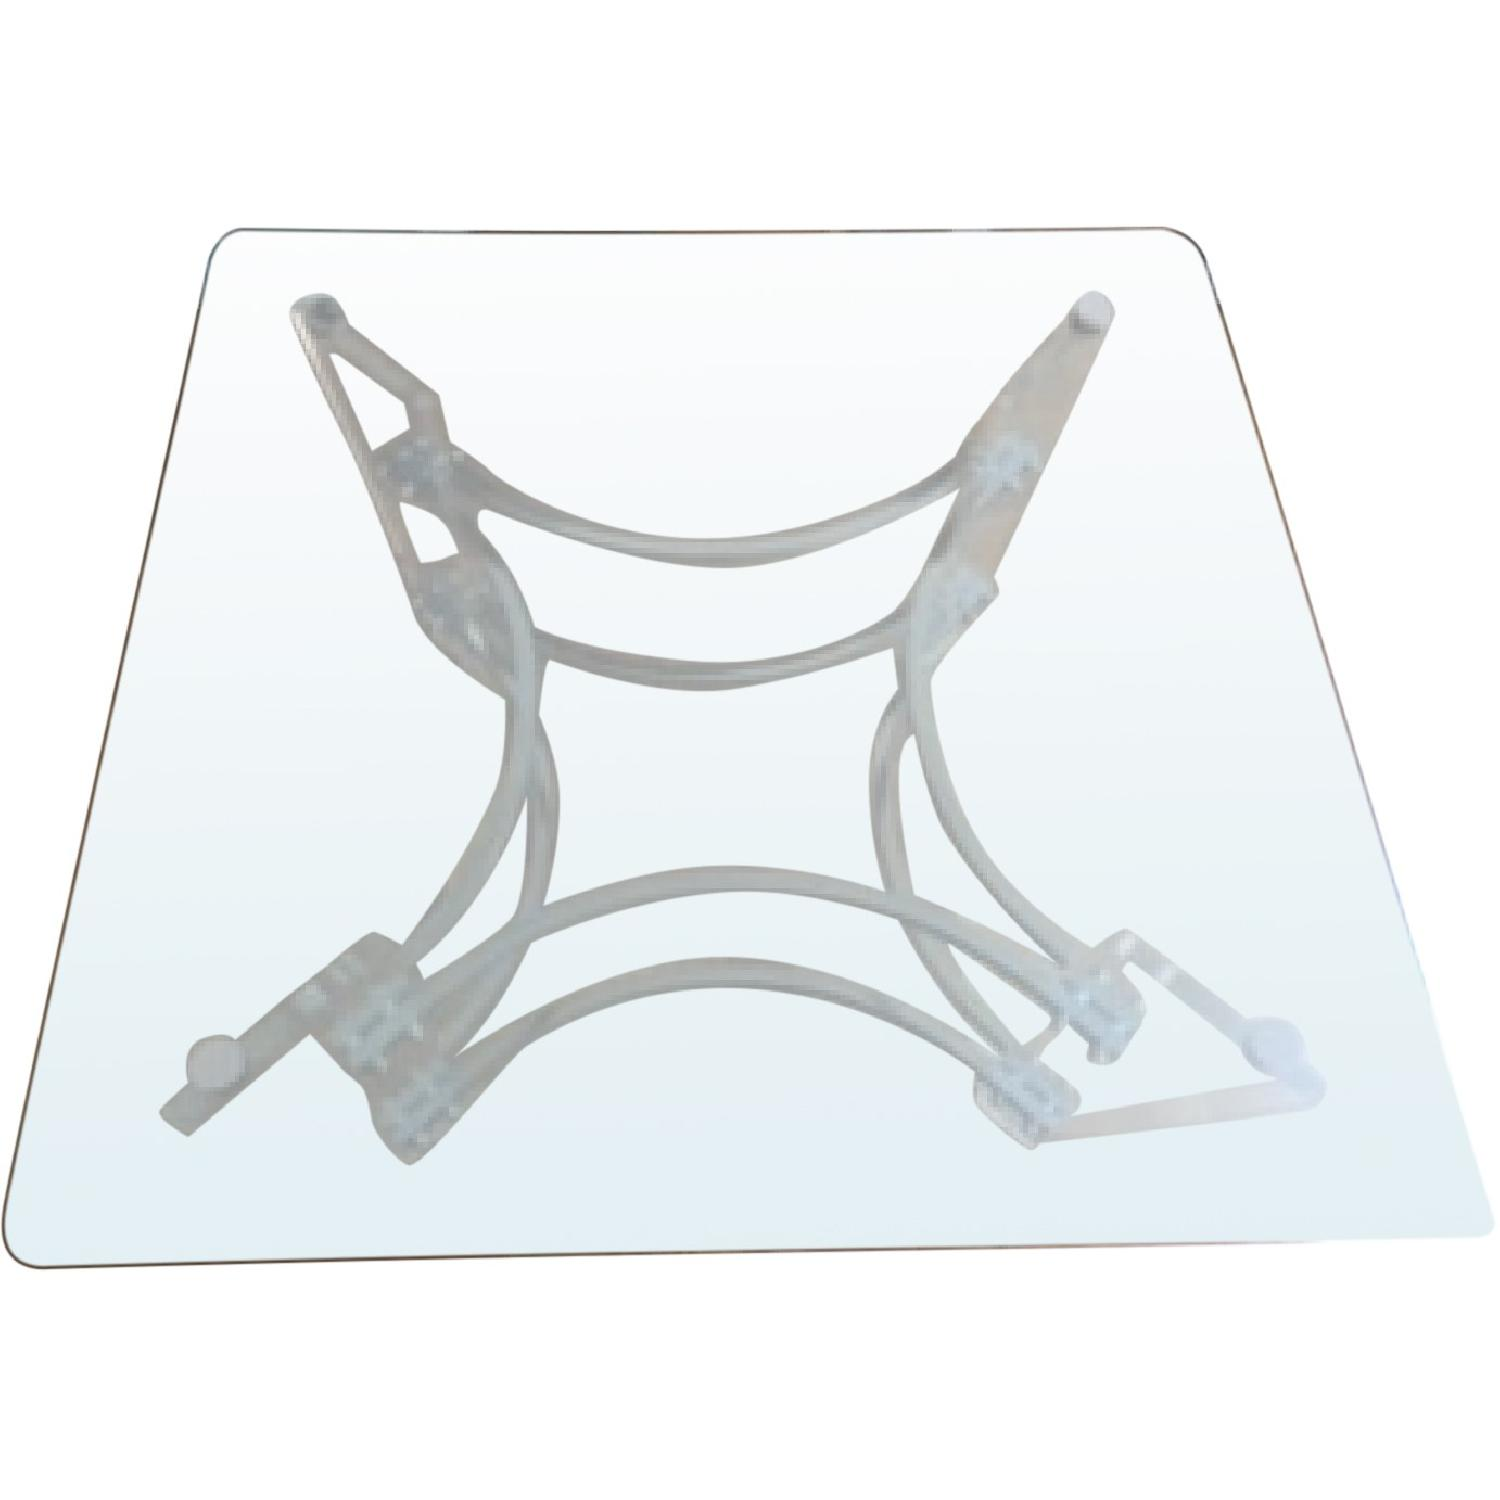 1970's Mid-Century Modern Square Glass Coffee Table